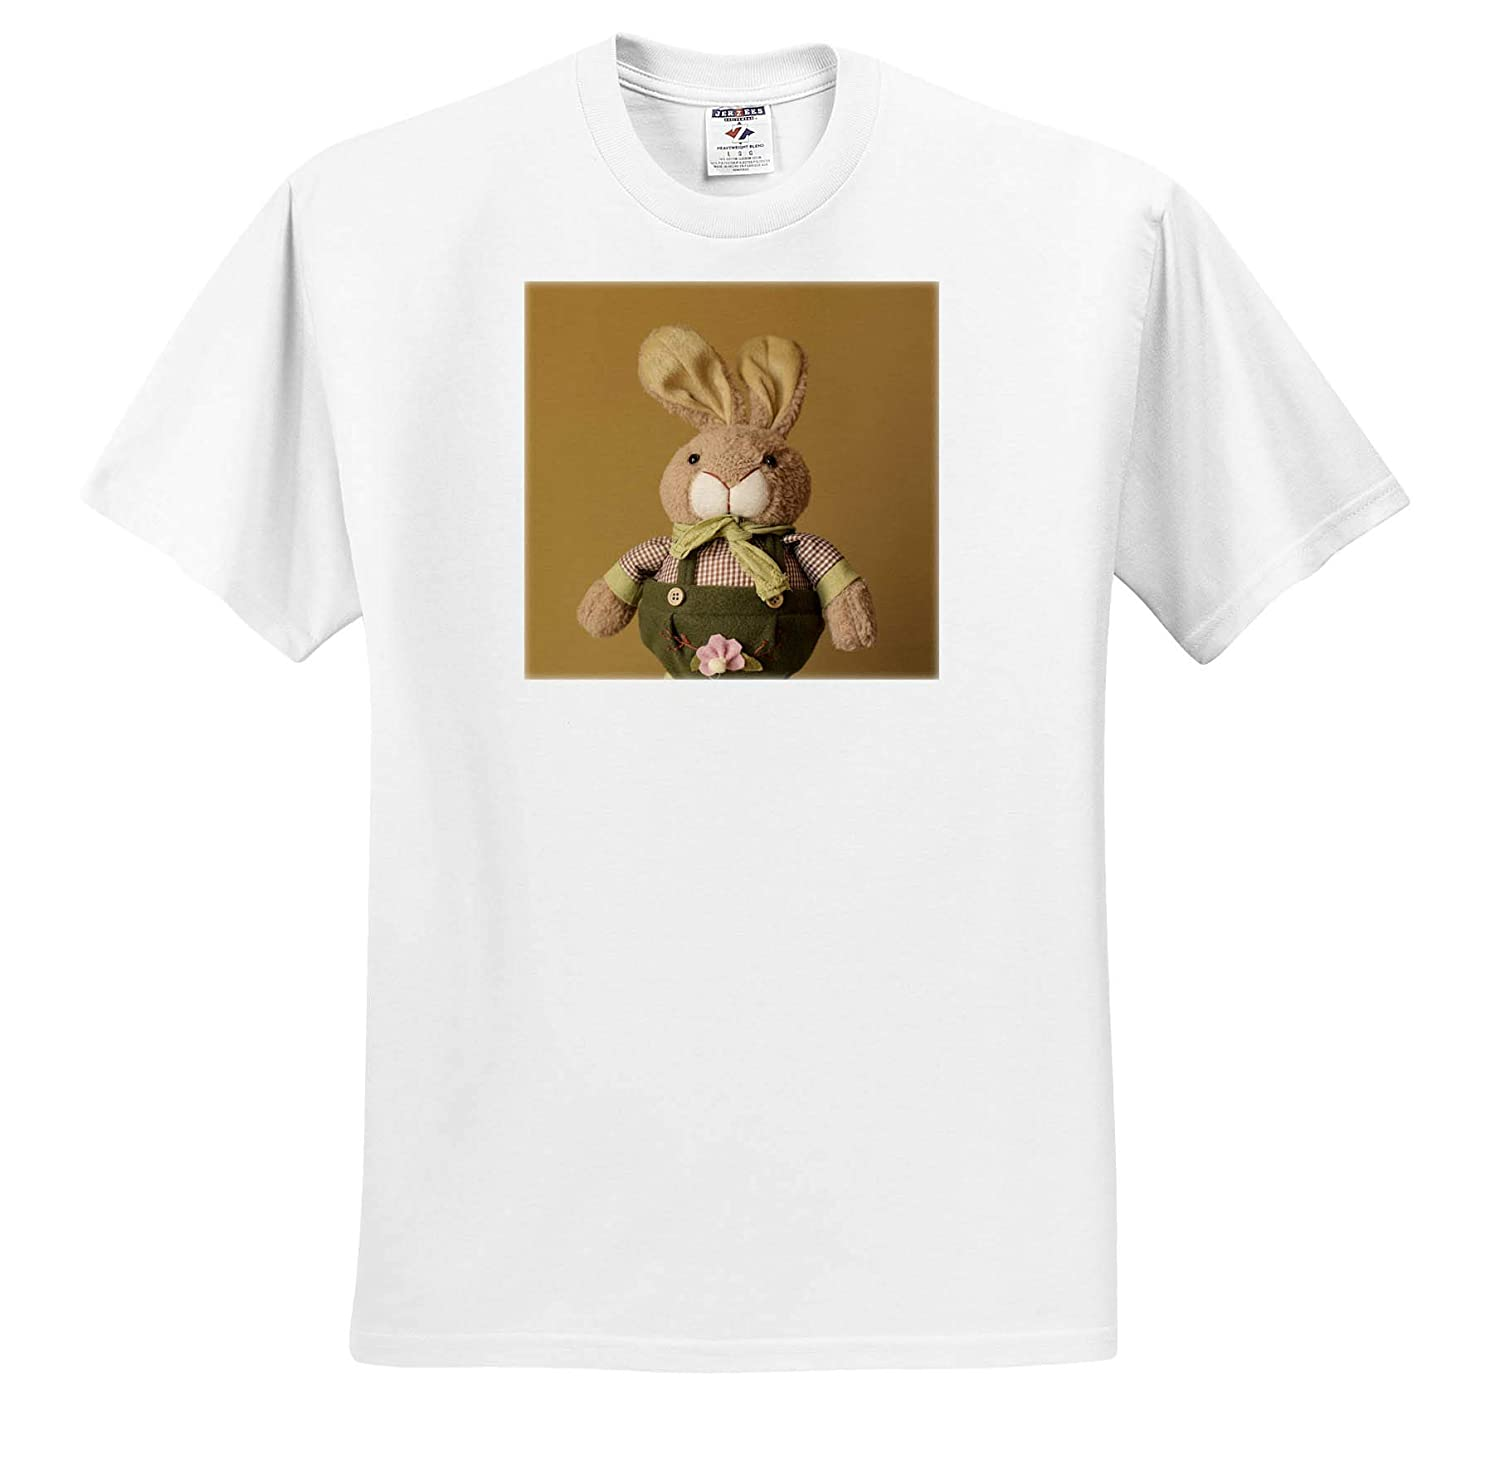 3dRose Stamp City Photograph of a Stuffed Bunny Dressed in Overalls and a Plaid Shirt Holiday - T-Shirts